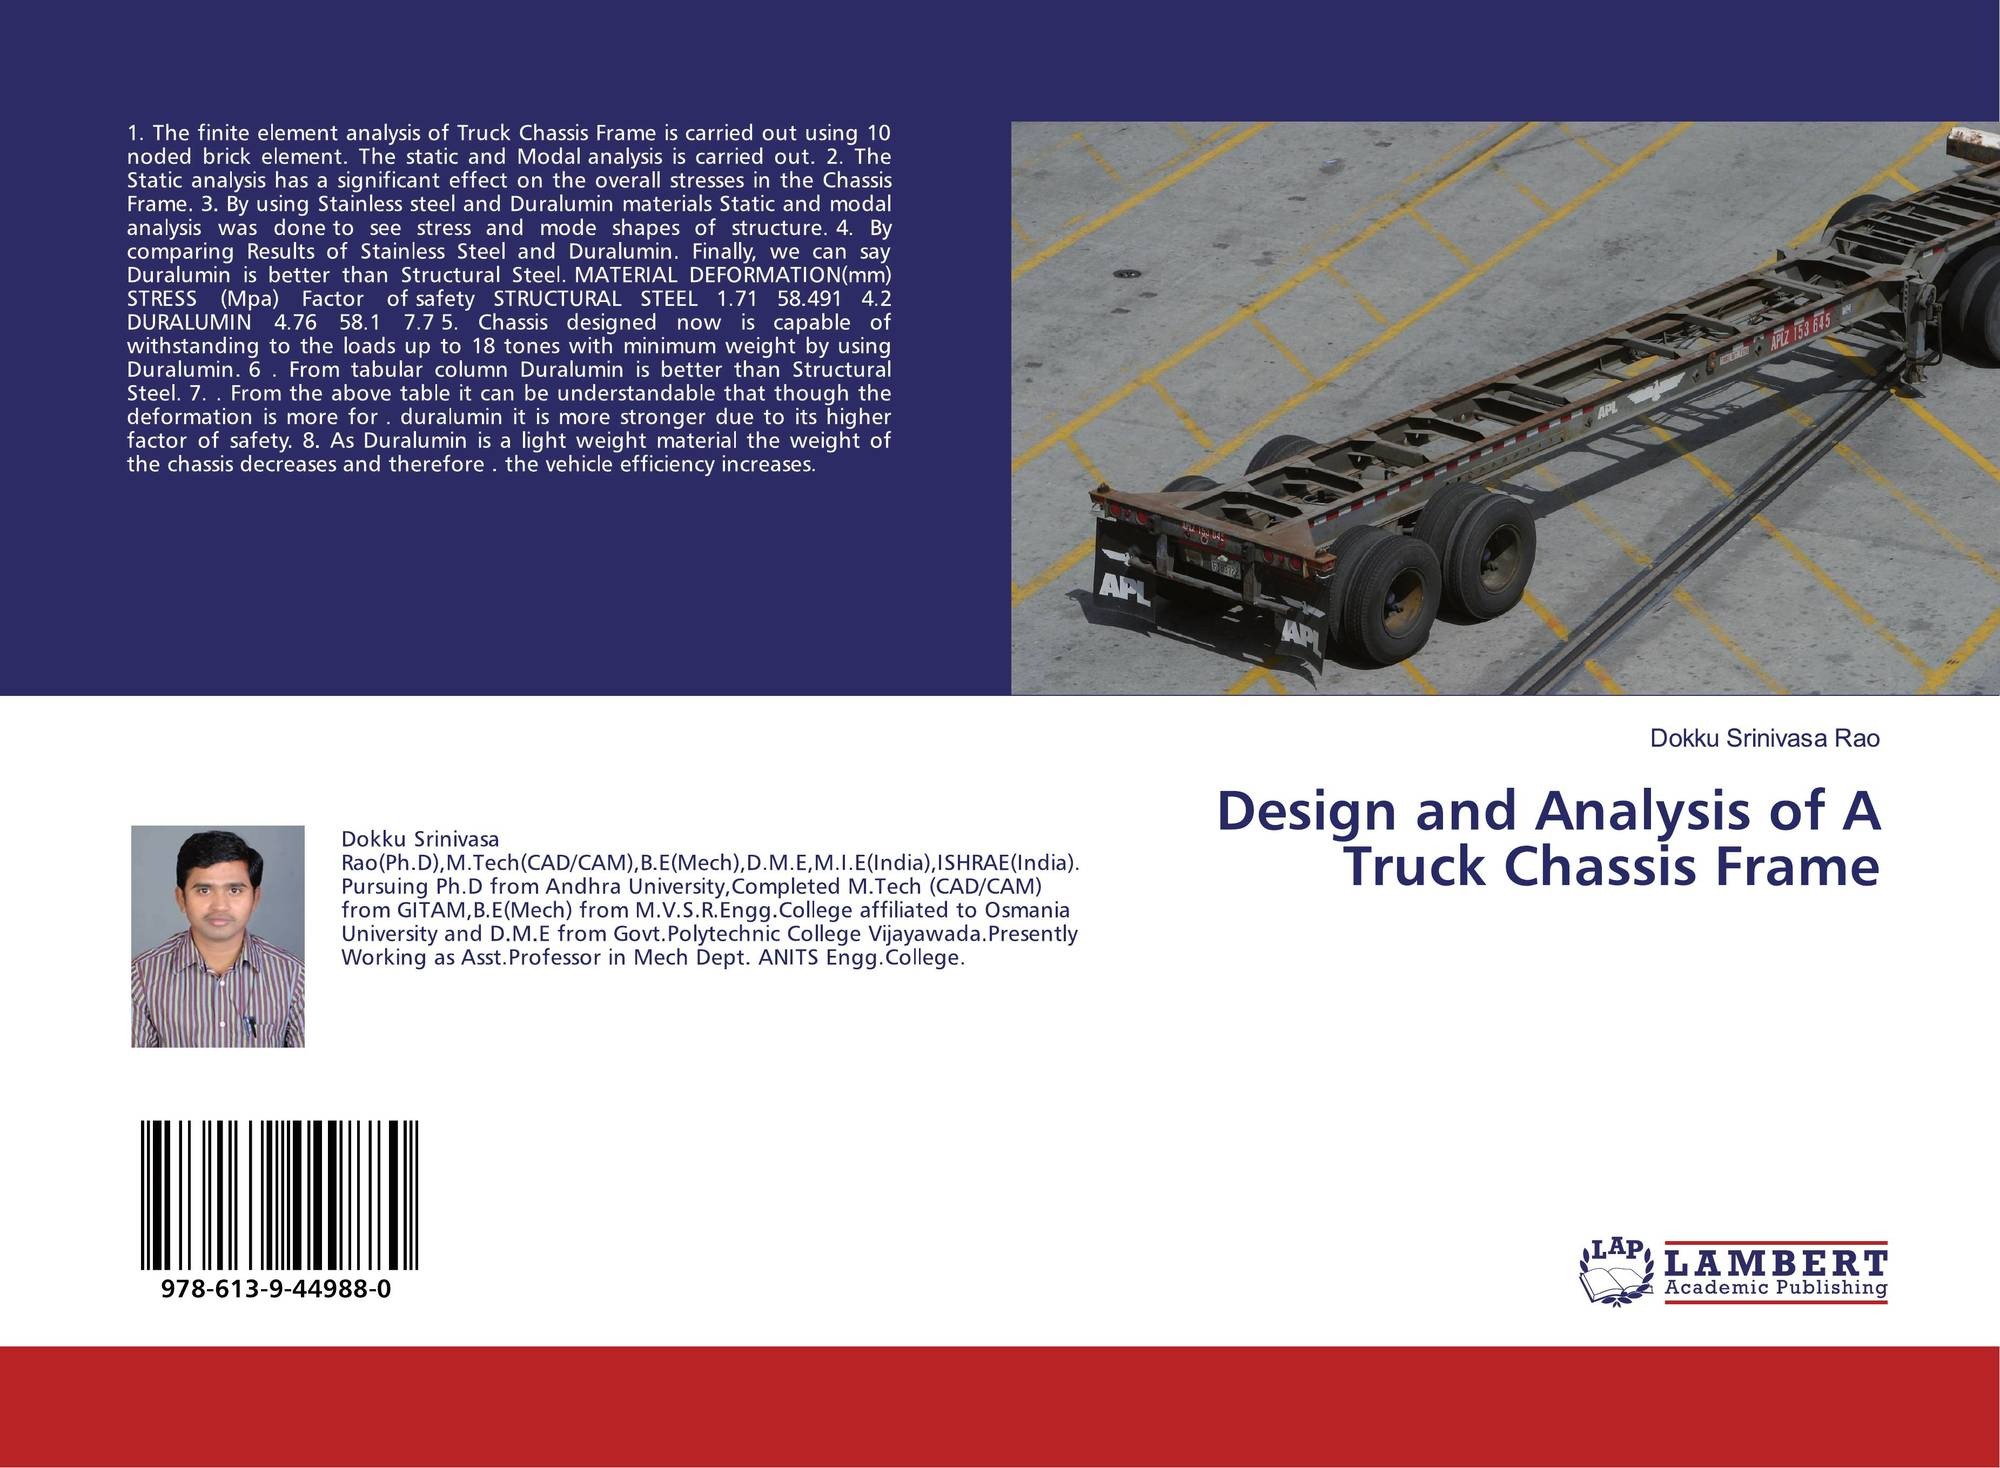 Design and Analysis of A Truck Chassis Frame, 978-613-9